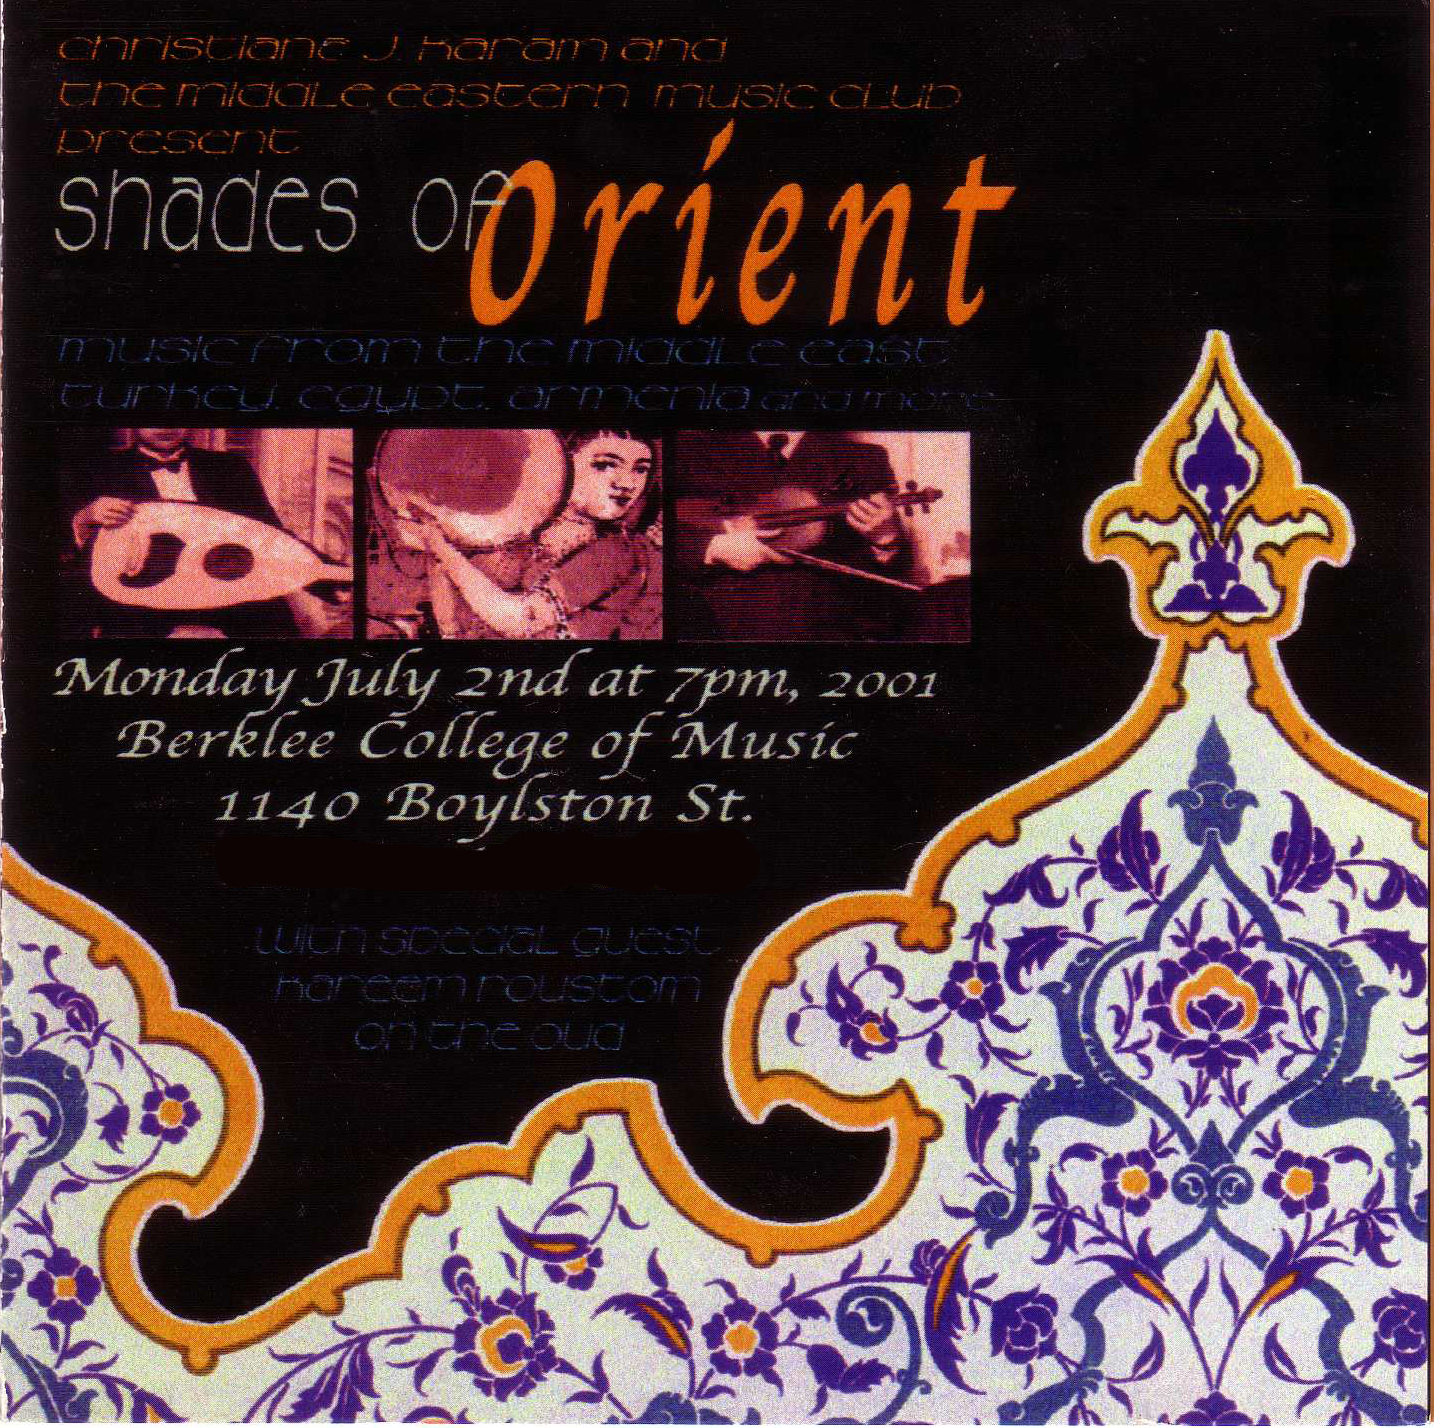 Shades of Orient, Summer 2001